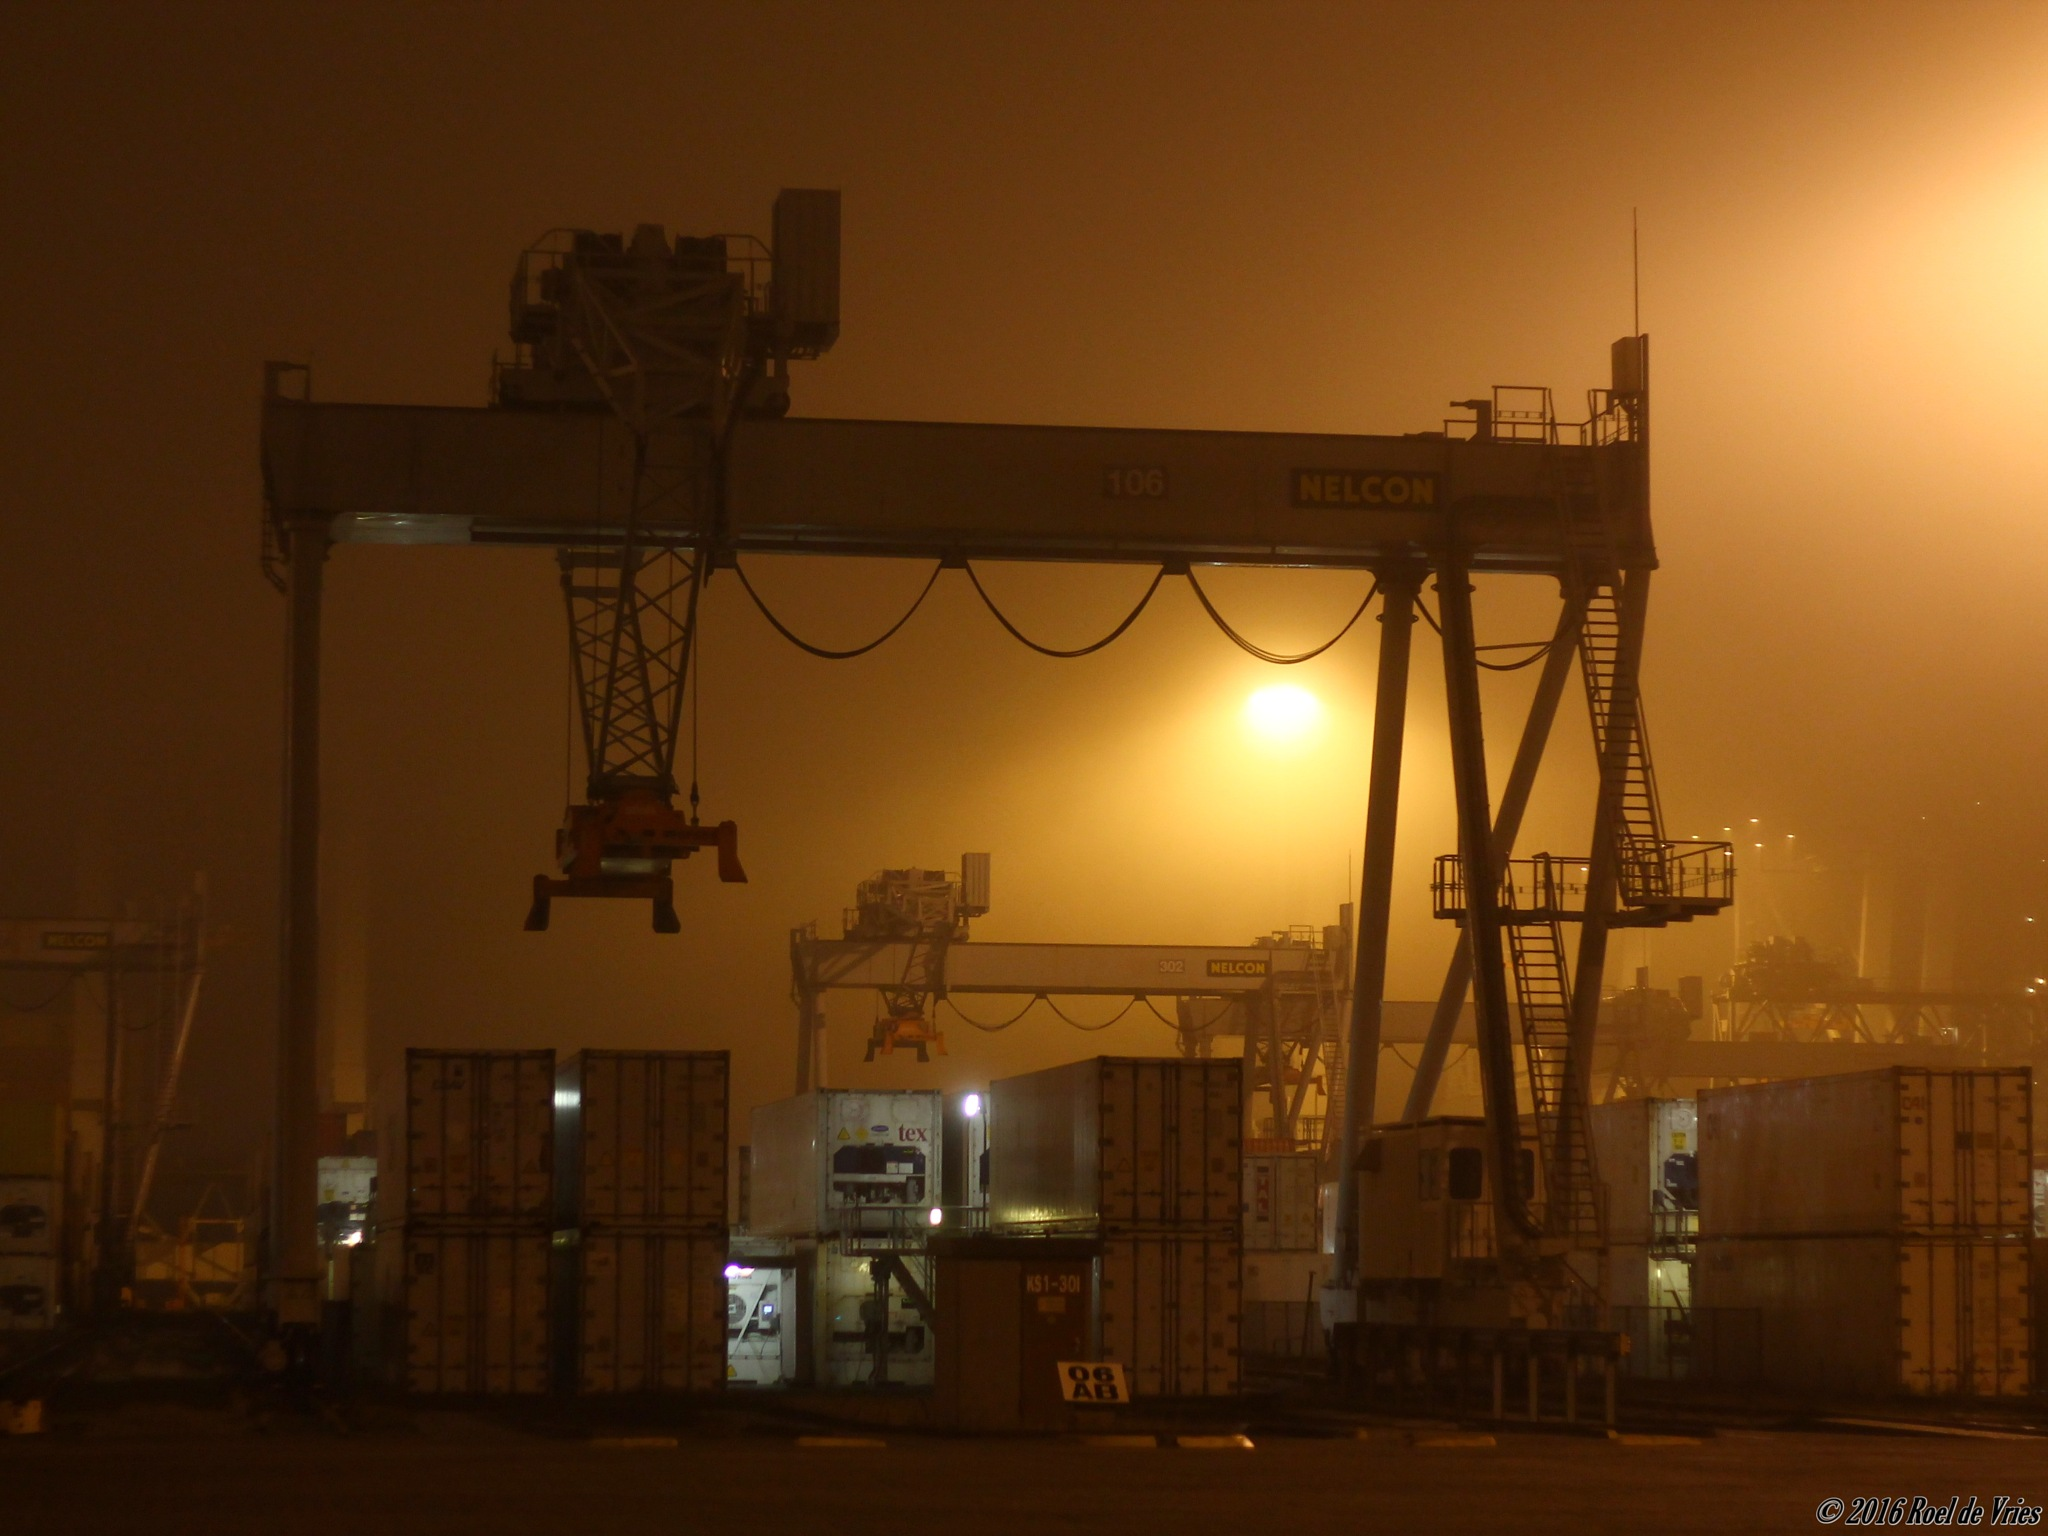 Port in the Fog by Roel de Vries